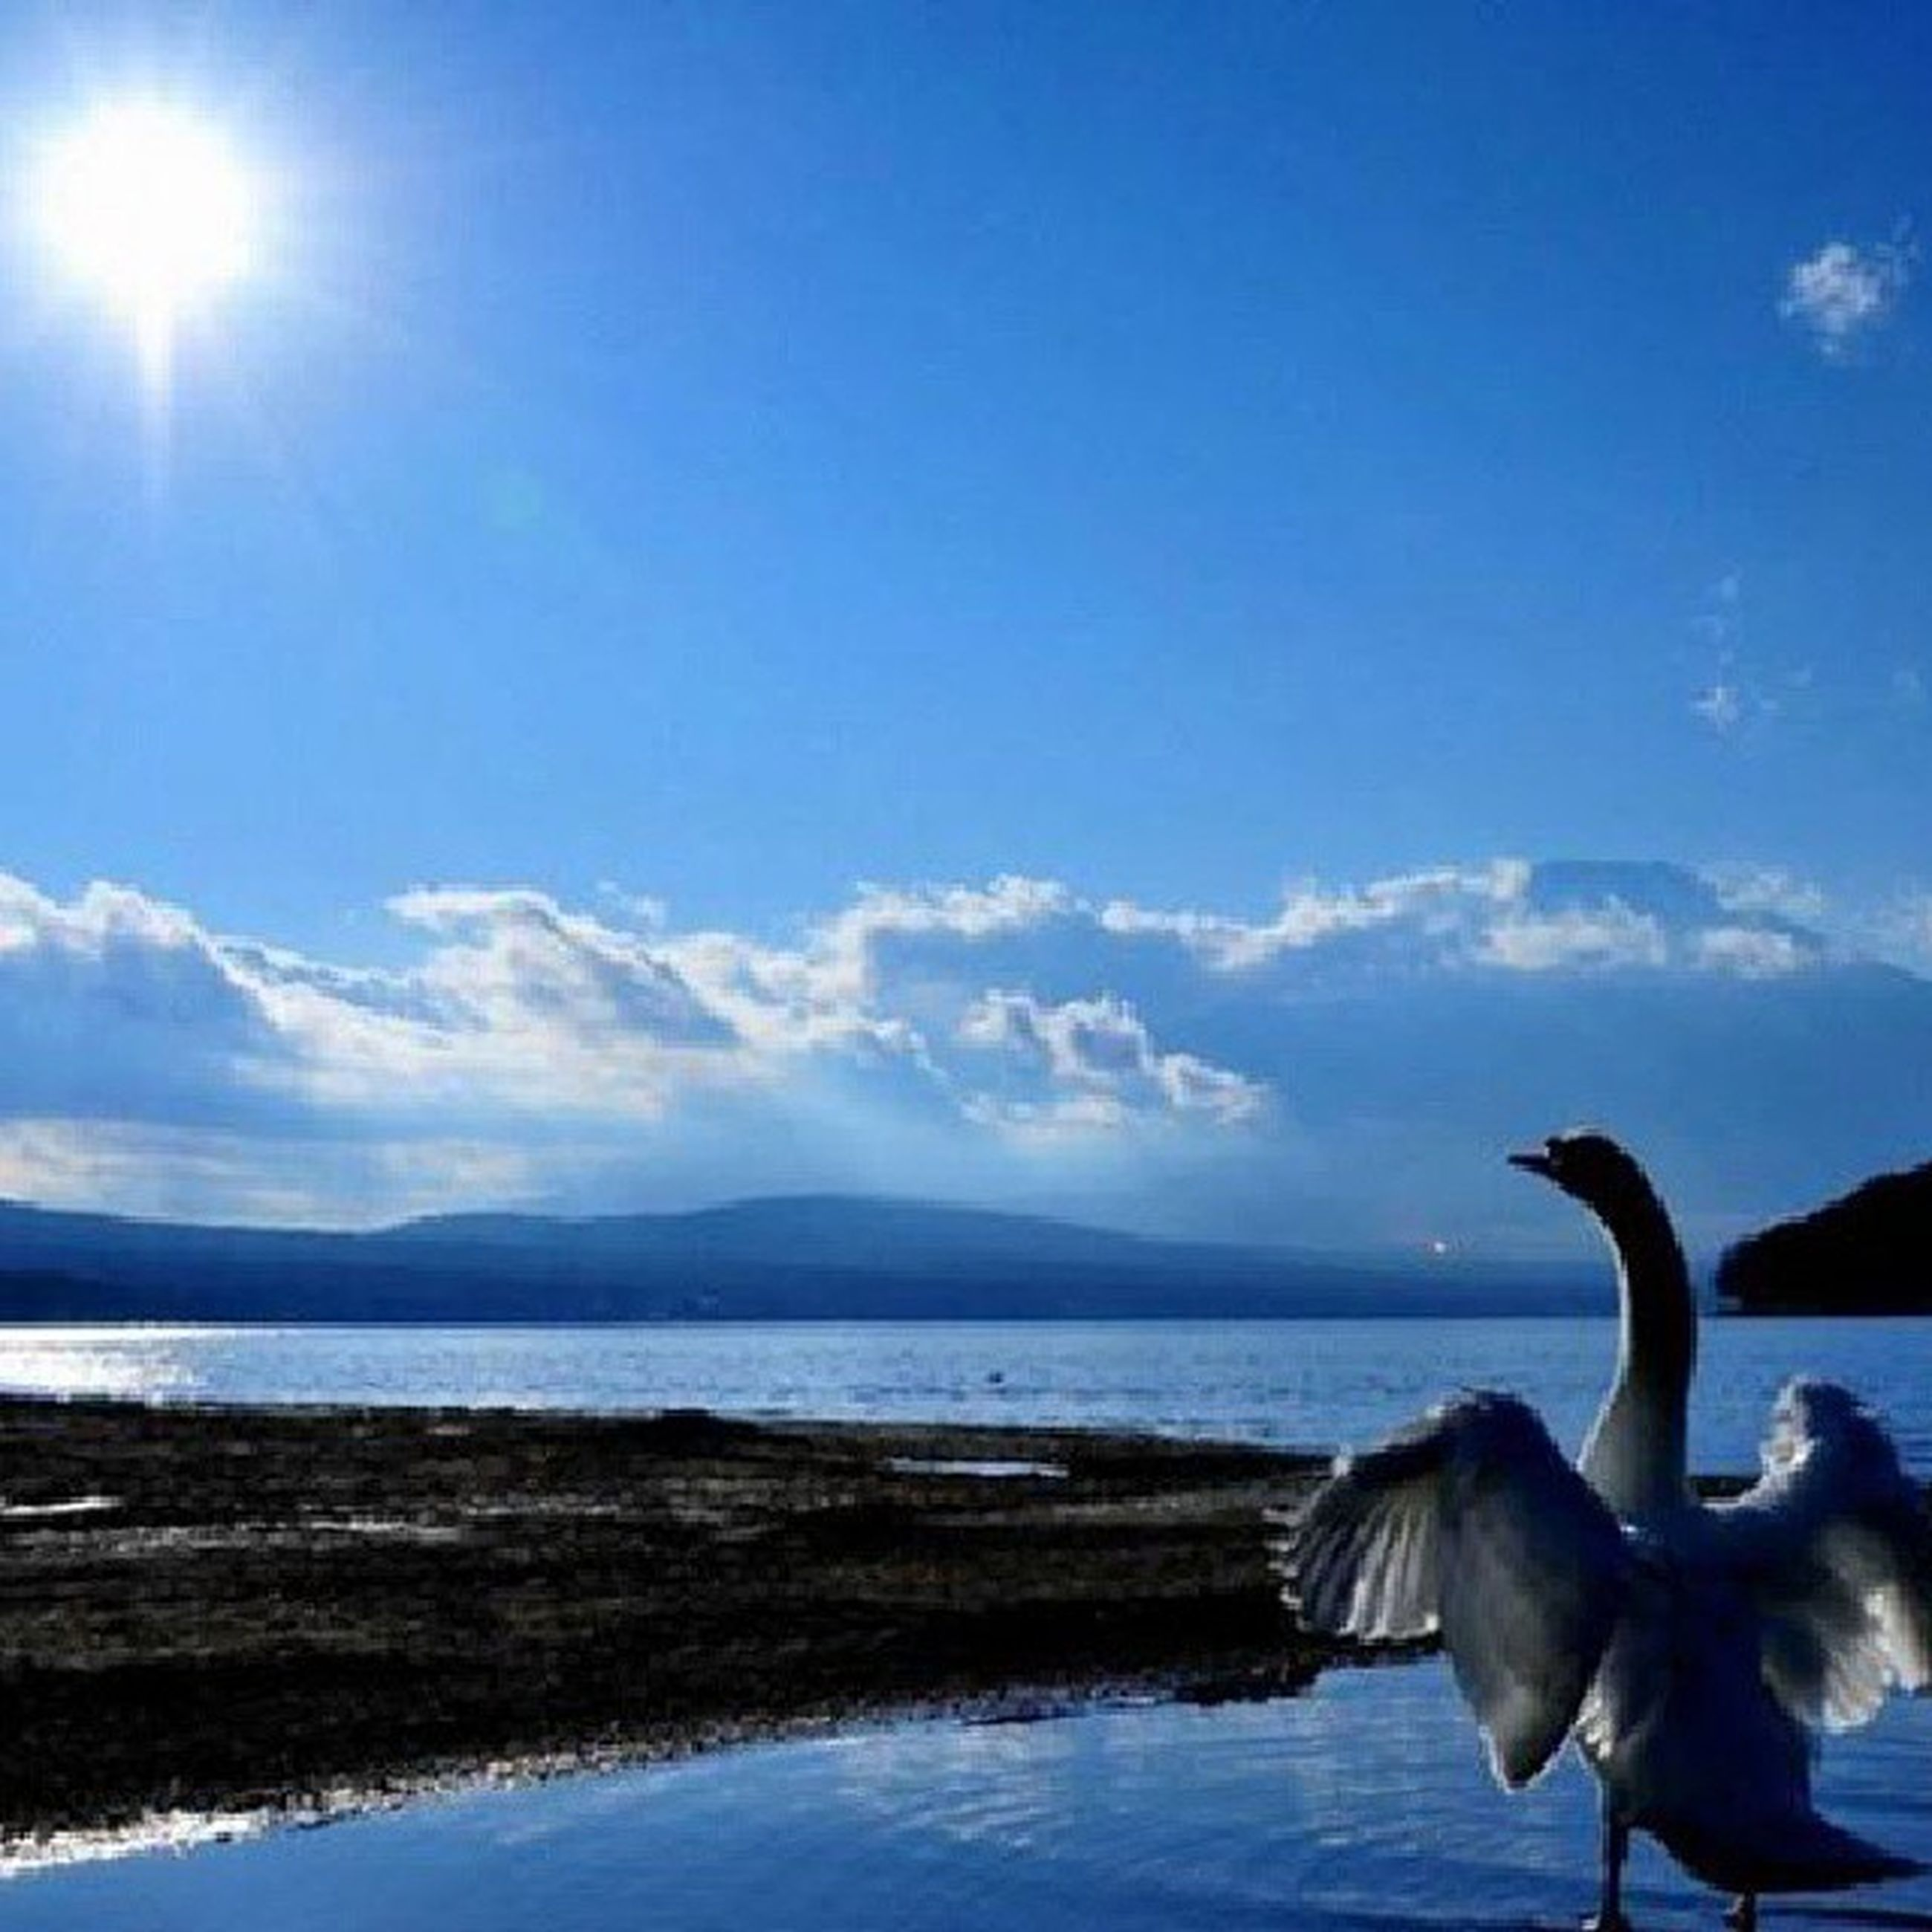 bird, water, sky, animal themes, sea, animals in the wild, wildlife, seagull, beauty in nature, nature, cloud - sky, cloud, blue, tranquility, scenics, tranquil scene, sunlight, sun, horizon over water, flying